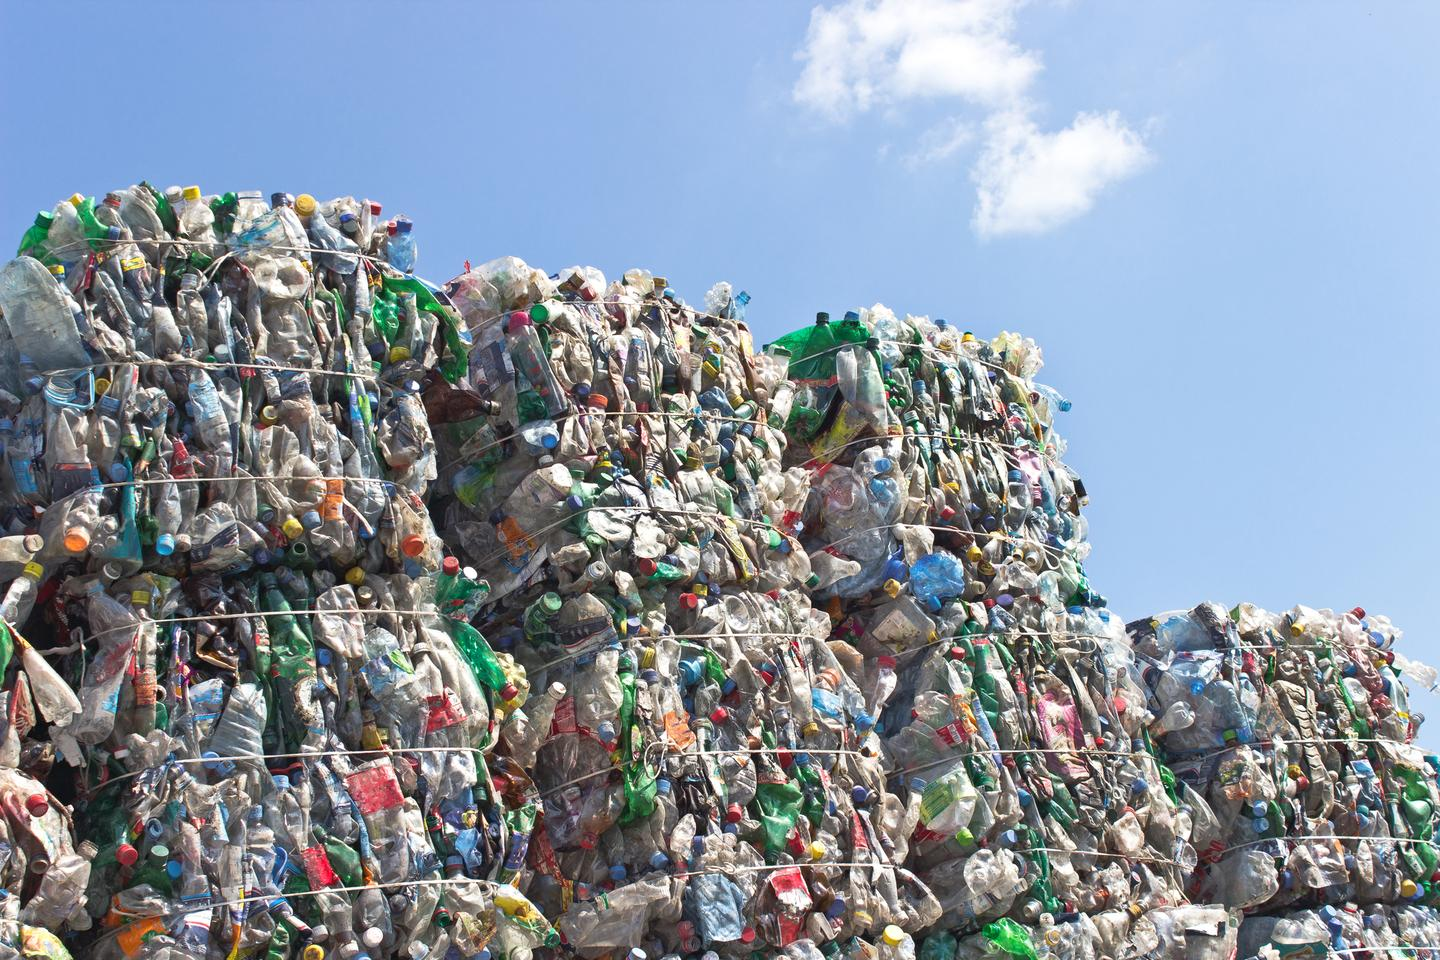 Researchers in Japan have developed a new catalyst that could make it easier to recycle waste plastic into new products